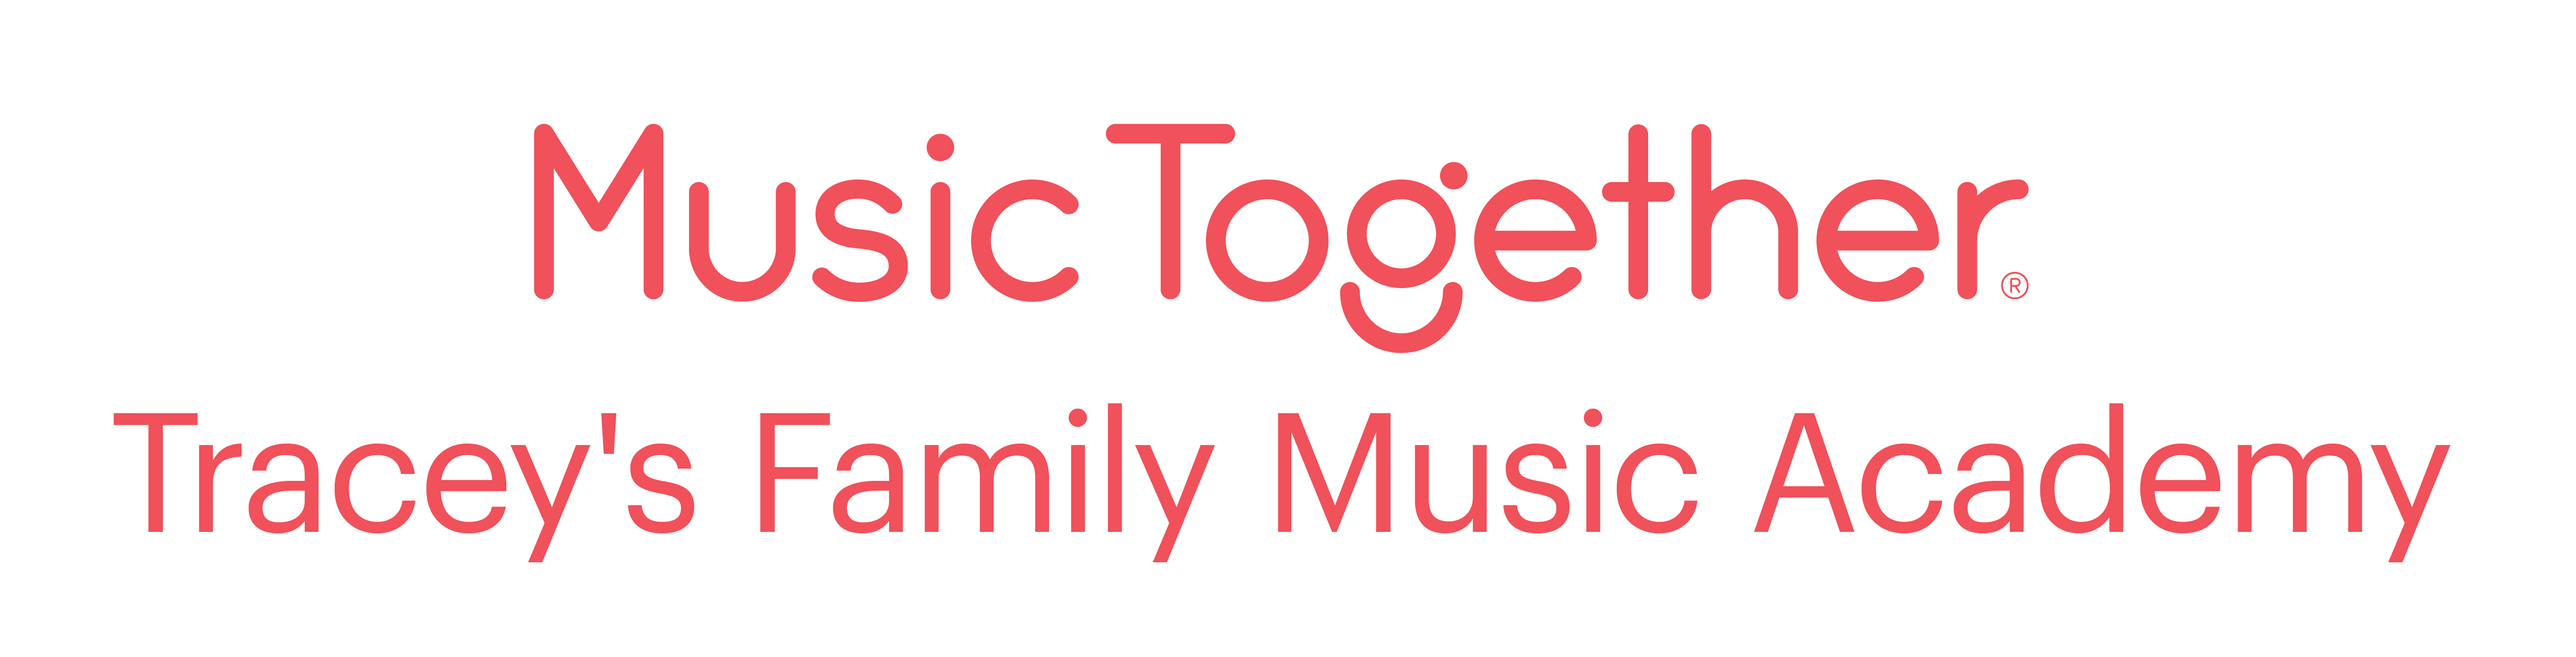 Tracey's Family Music Academy